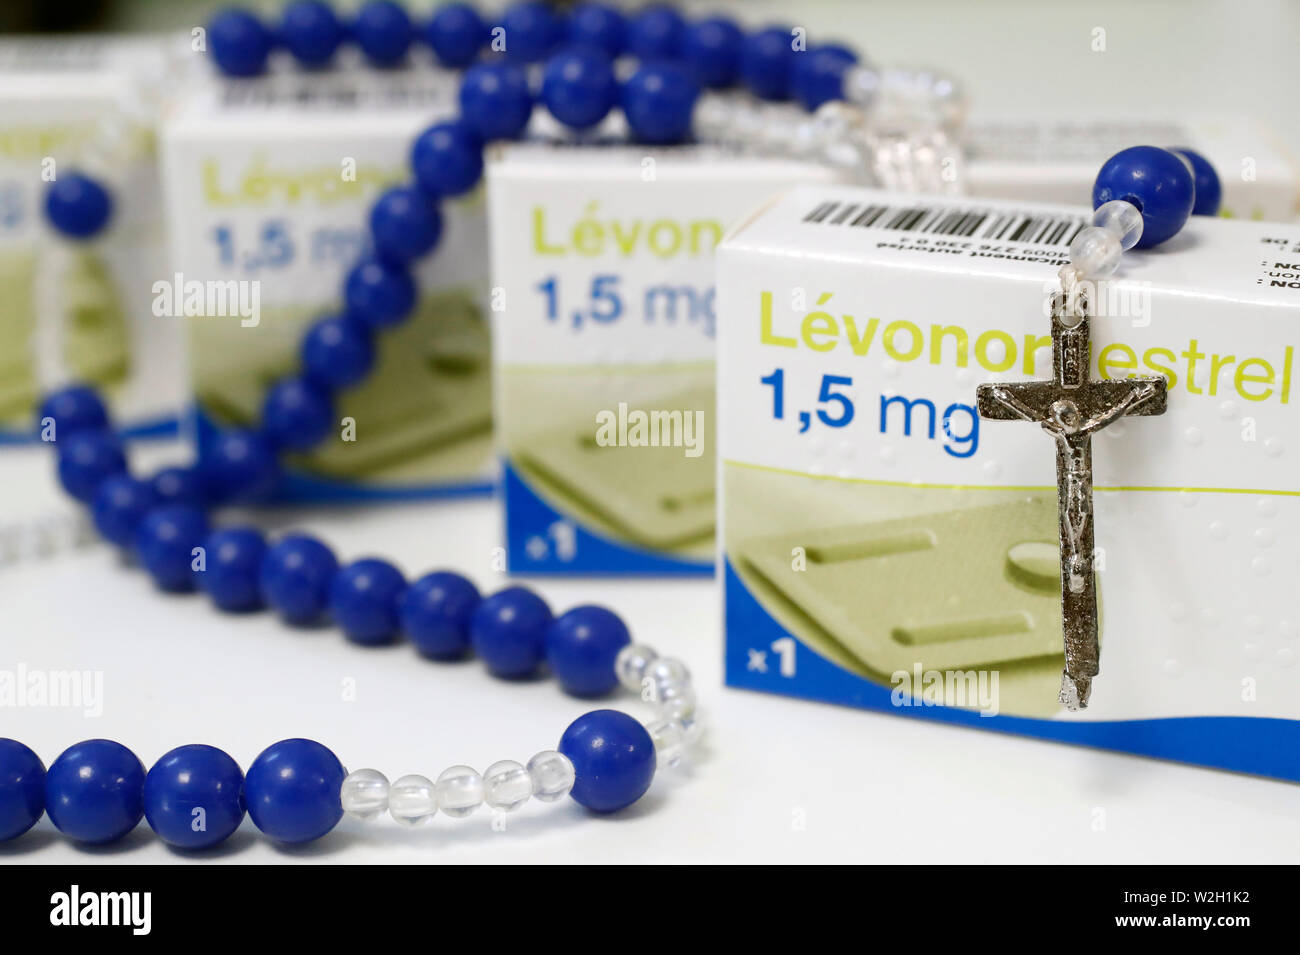 Rosary and Levonorgestrel an hormonal medication which is used in a number of birth control methods.  France. - Stock Image